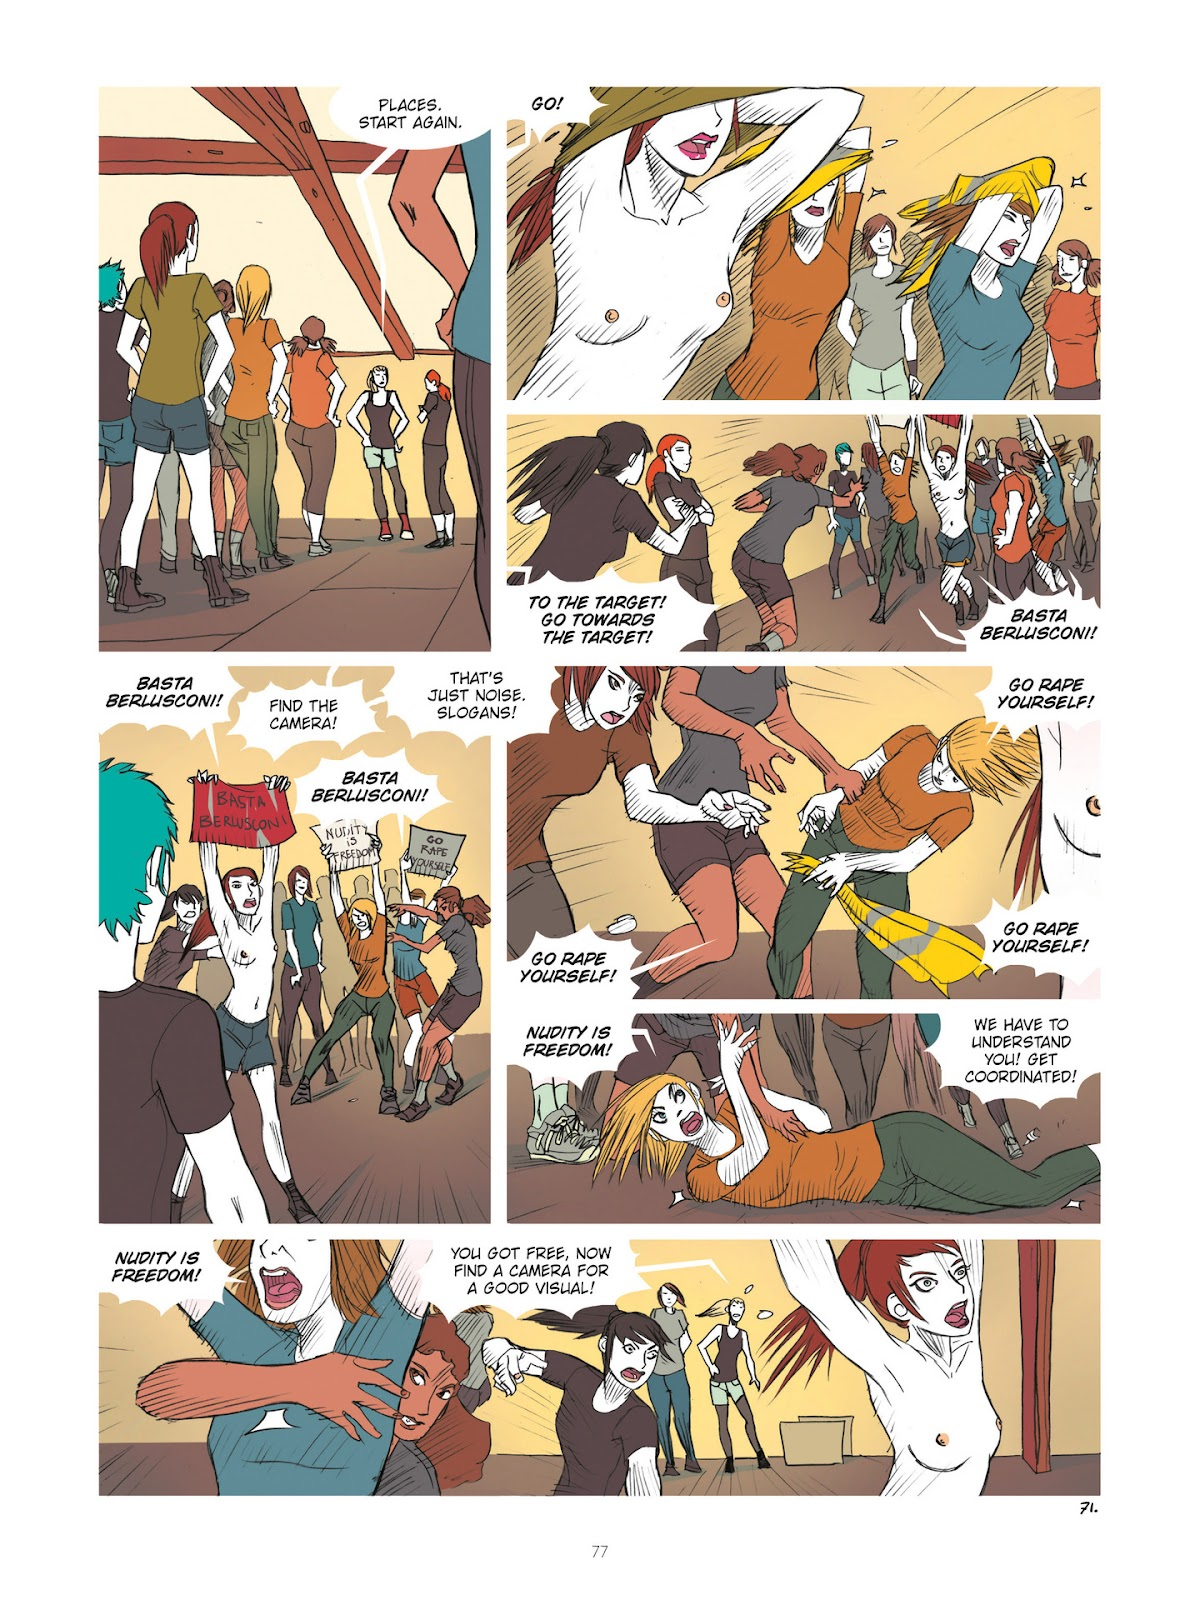 Read online Diary of A Femen comic -  Issue # TPB - 79